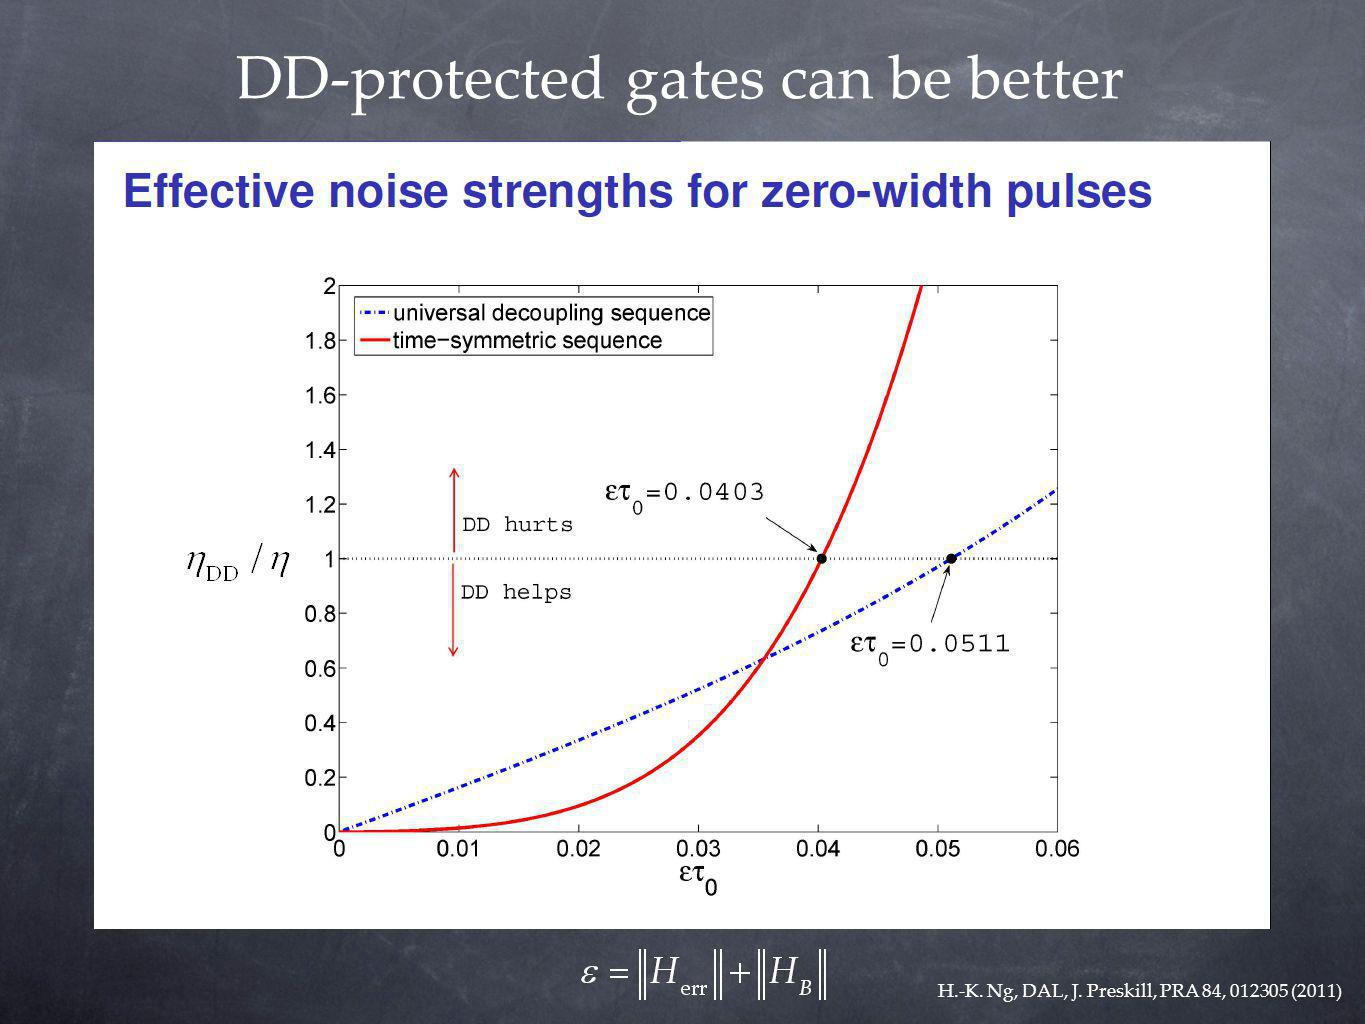 DD-protected gates can be better